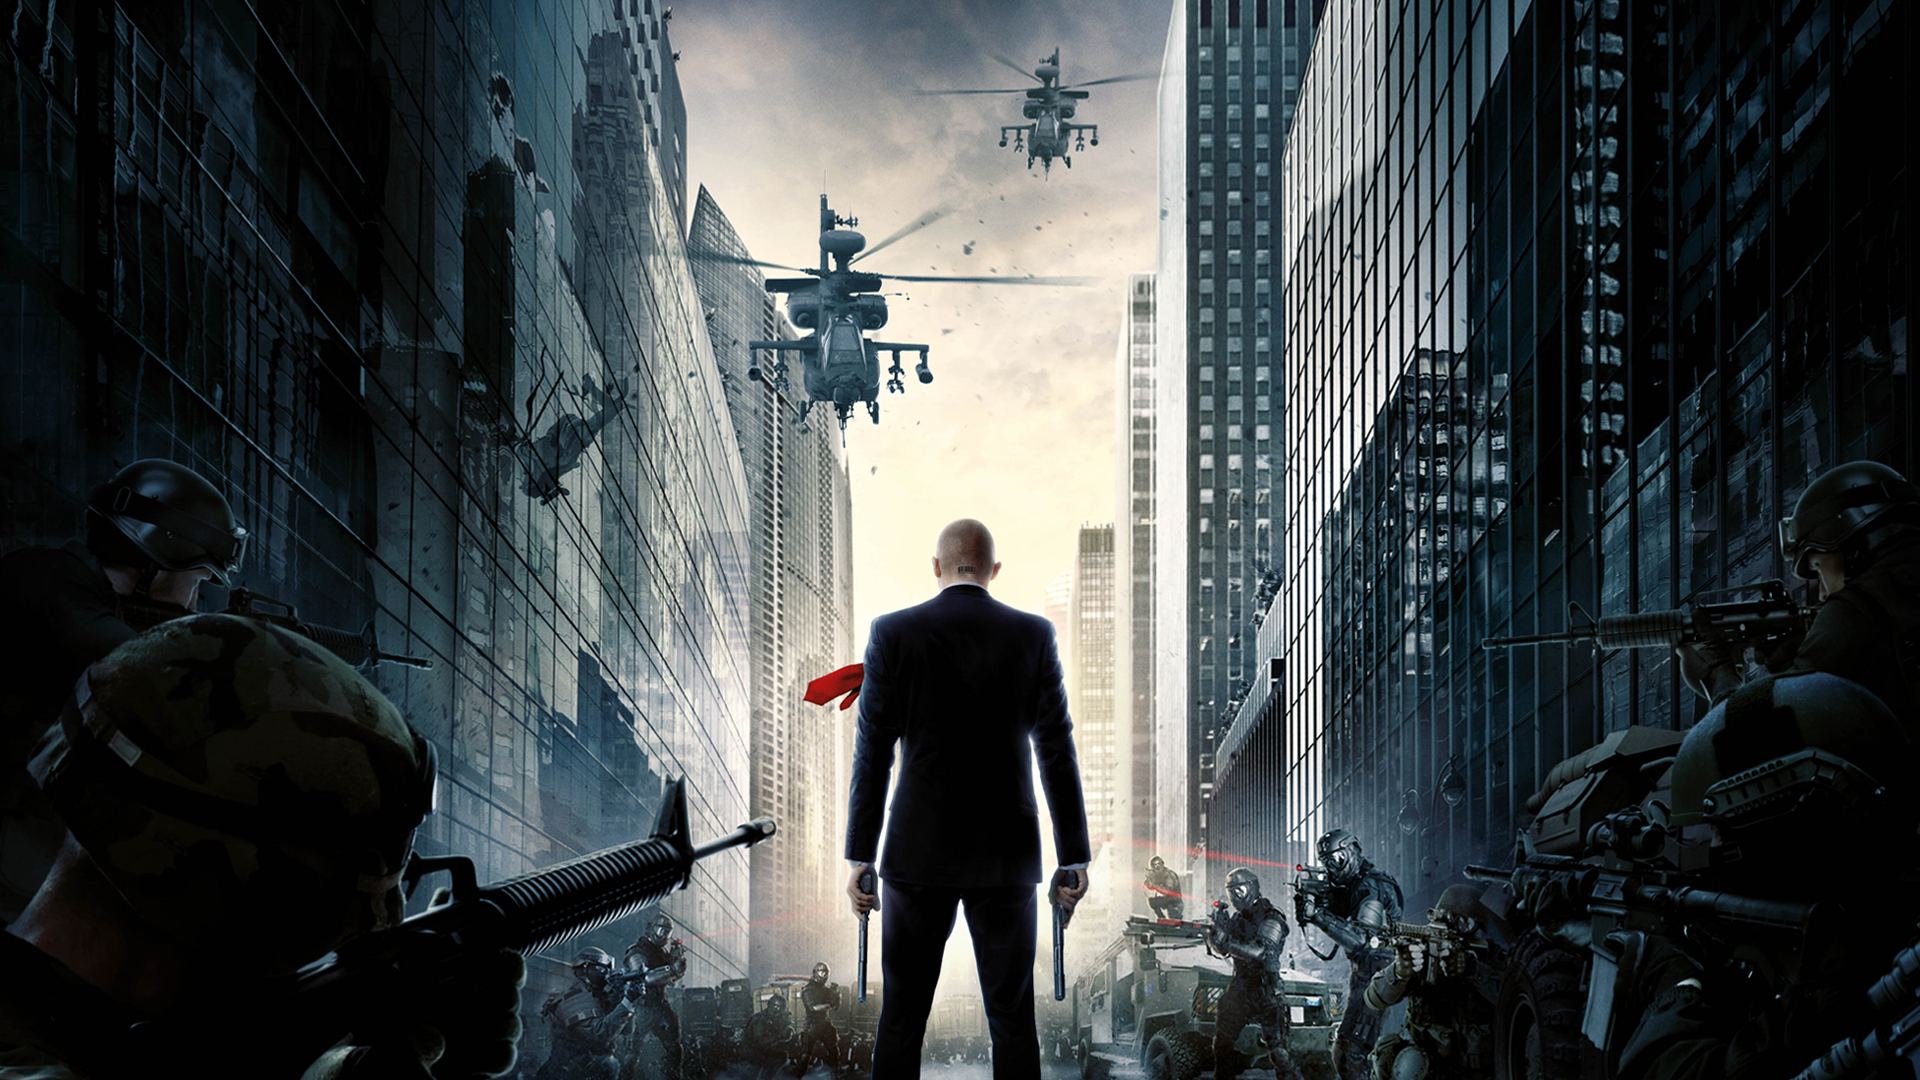 agent 47 hd wallpapers - photo #26